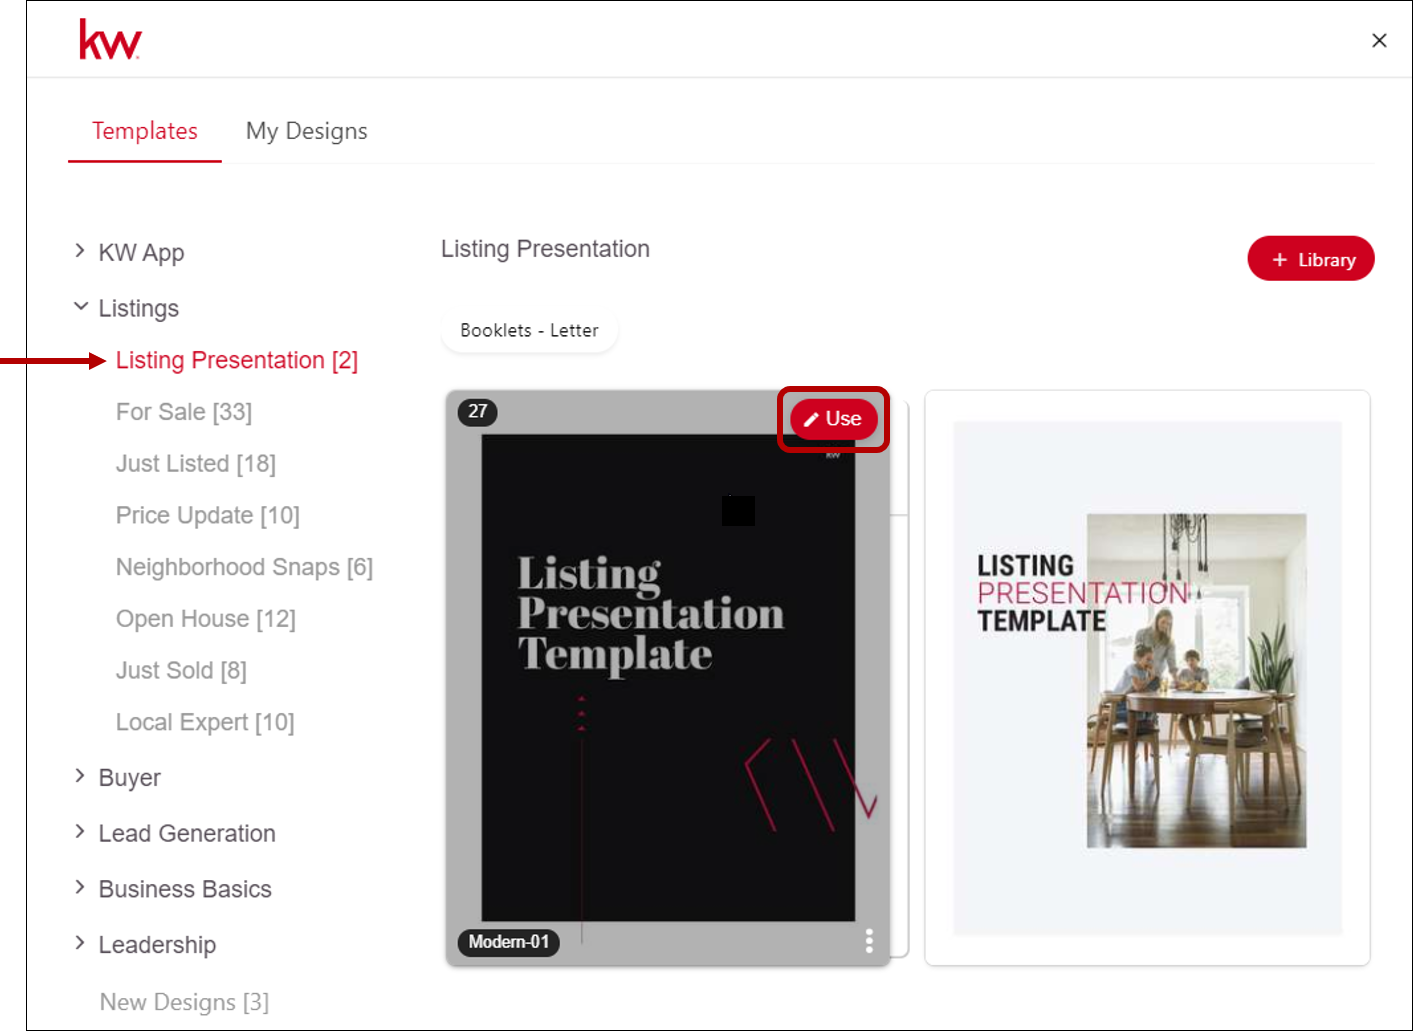 select_listing_presentation.png